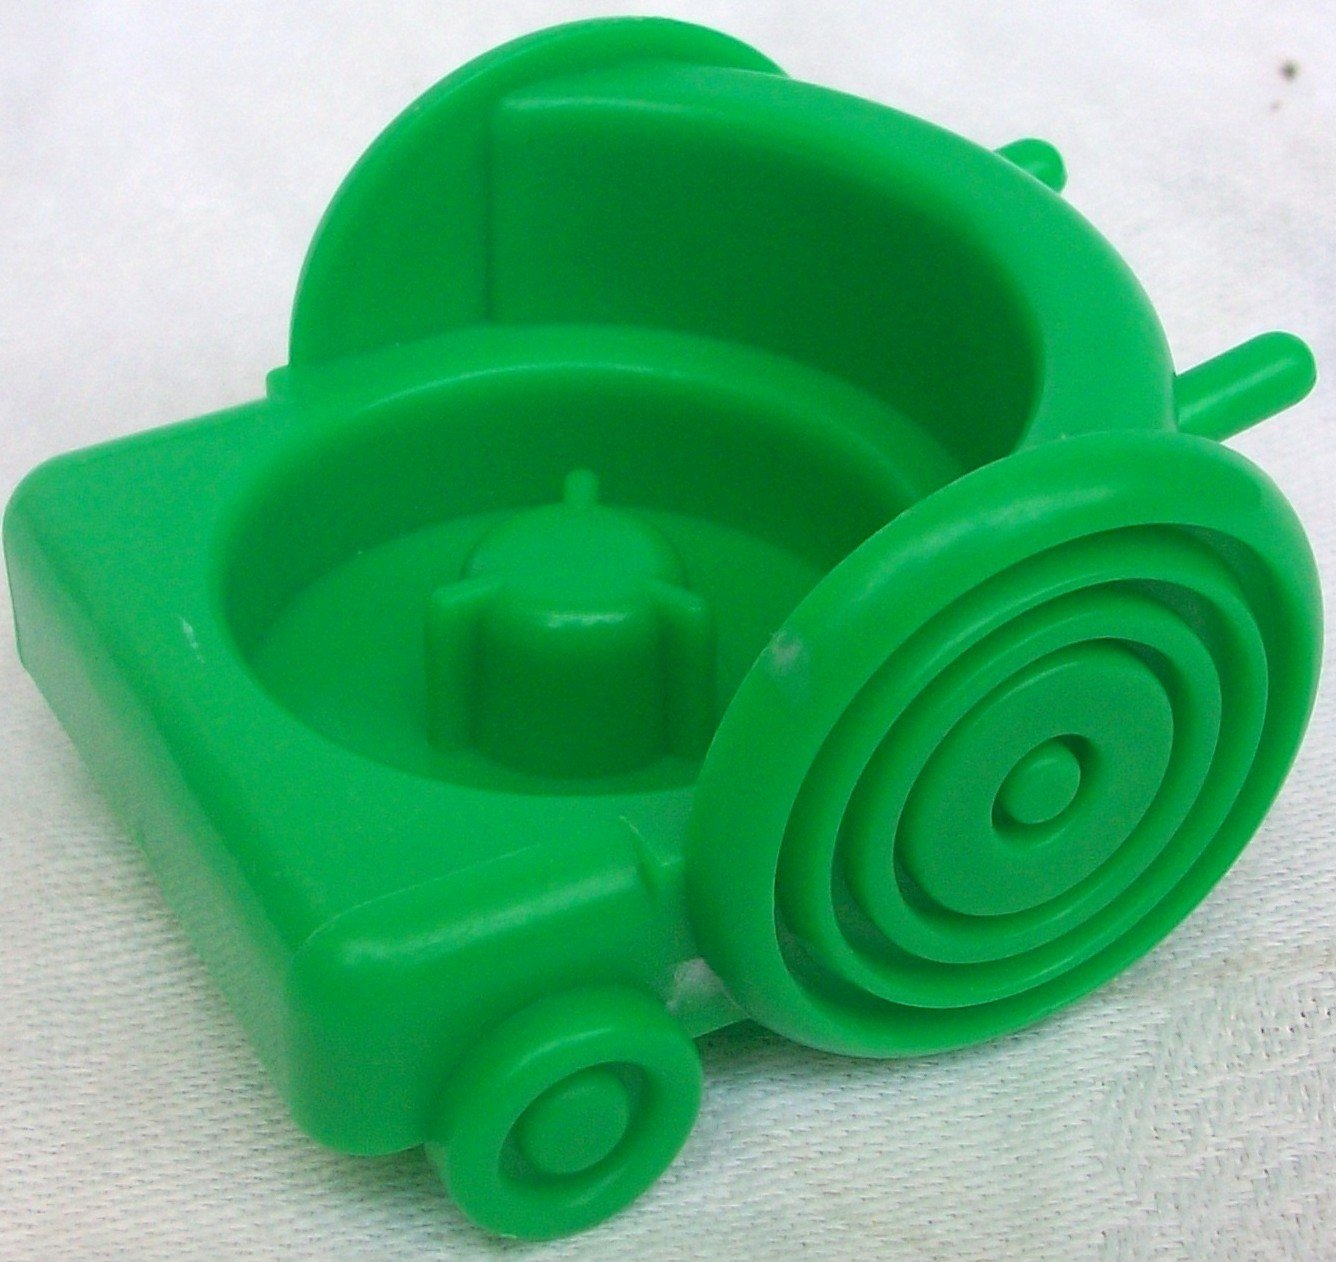 Fisher Price Little People Green Vehicle Trolley Cart Car Replacement Toy